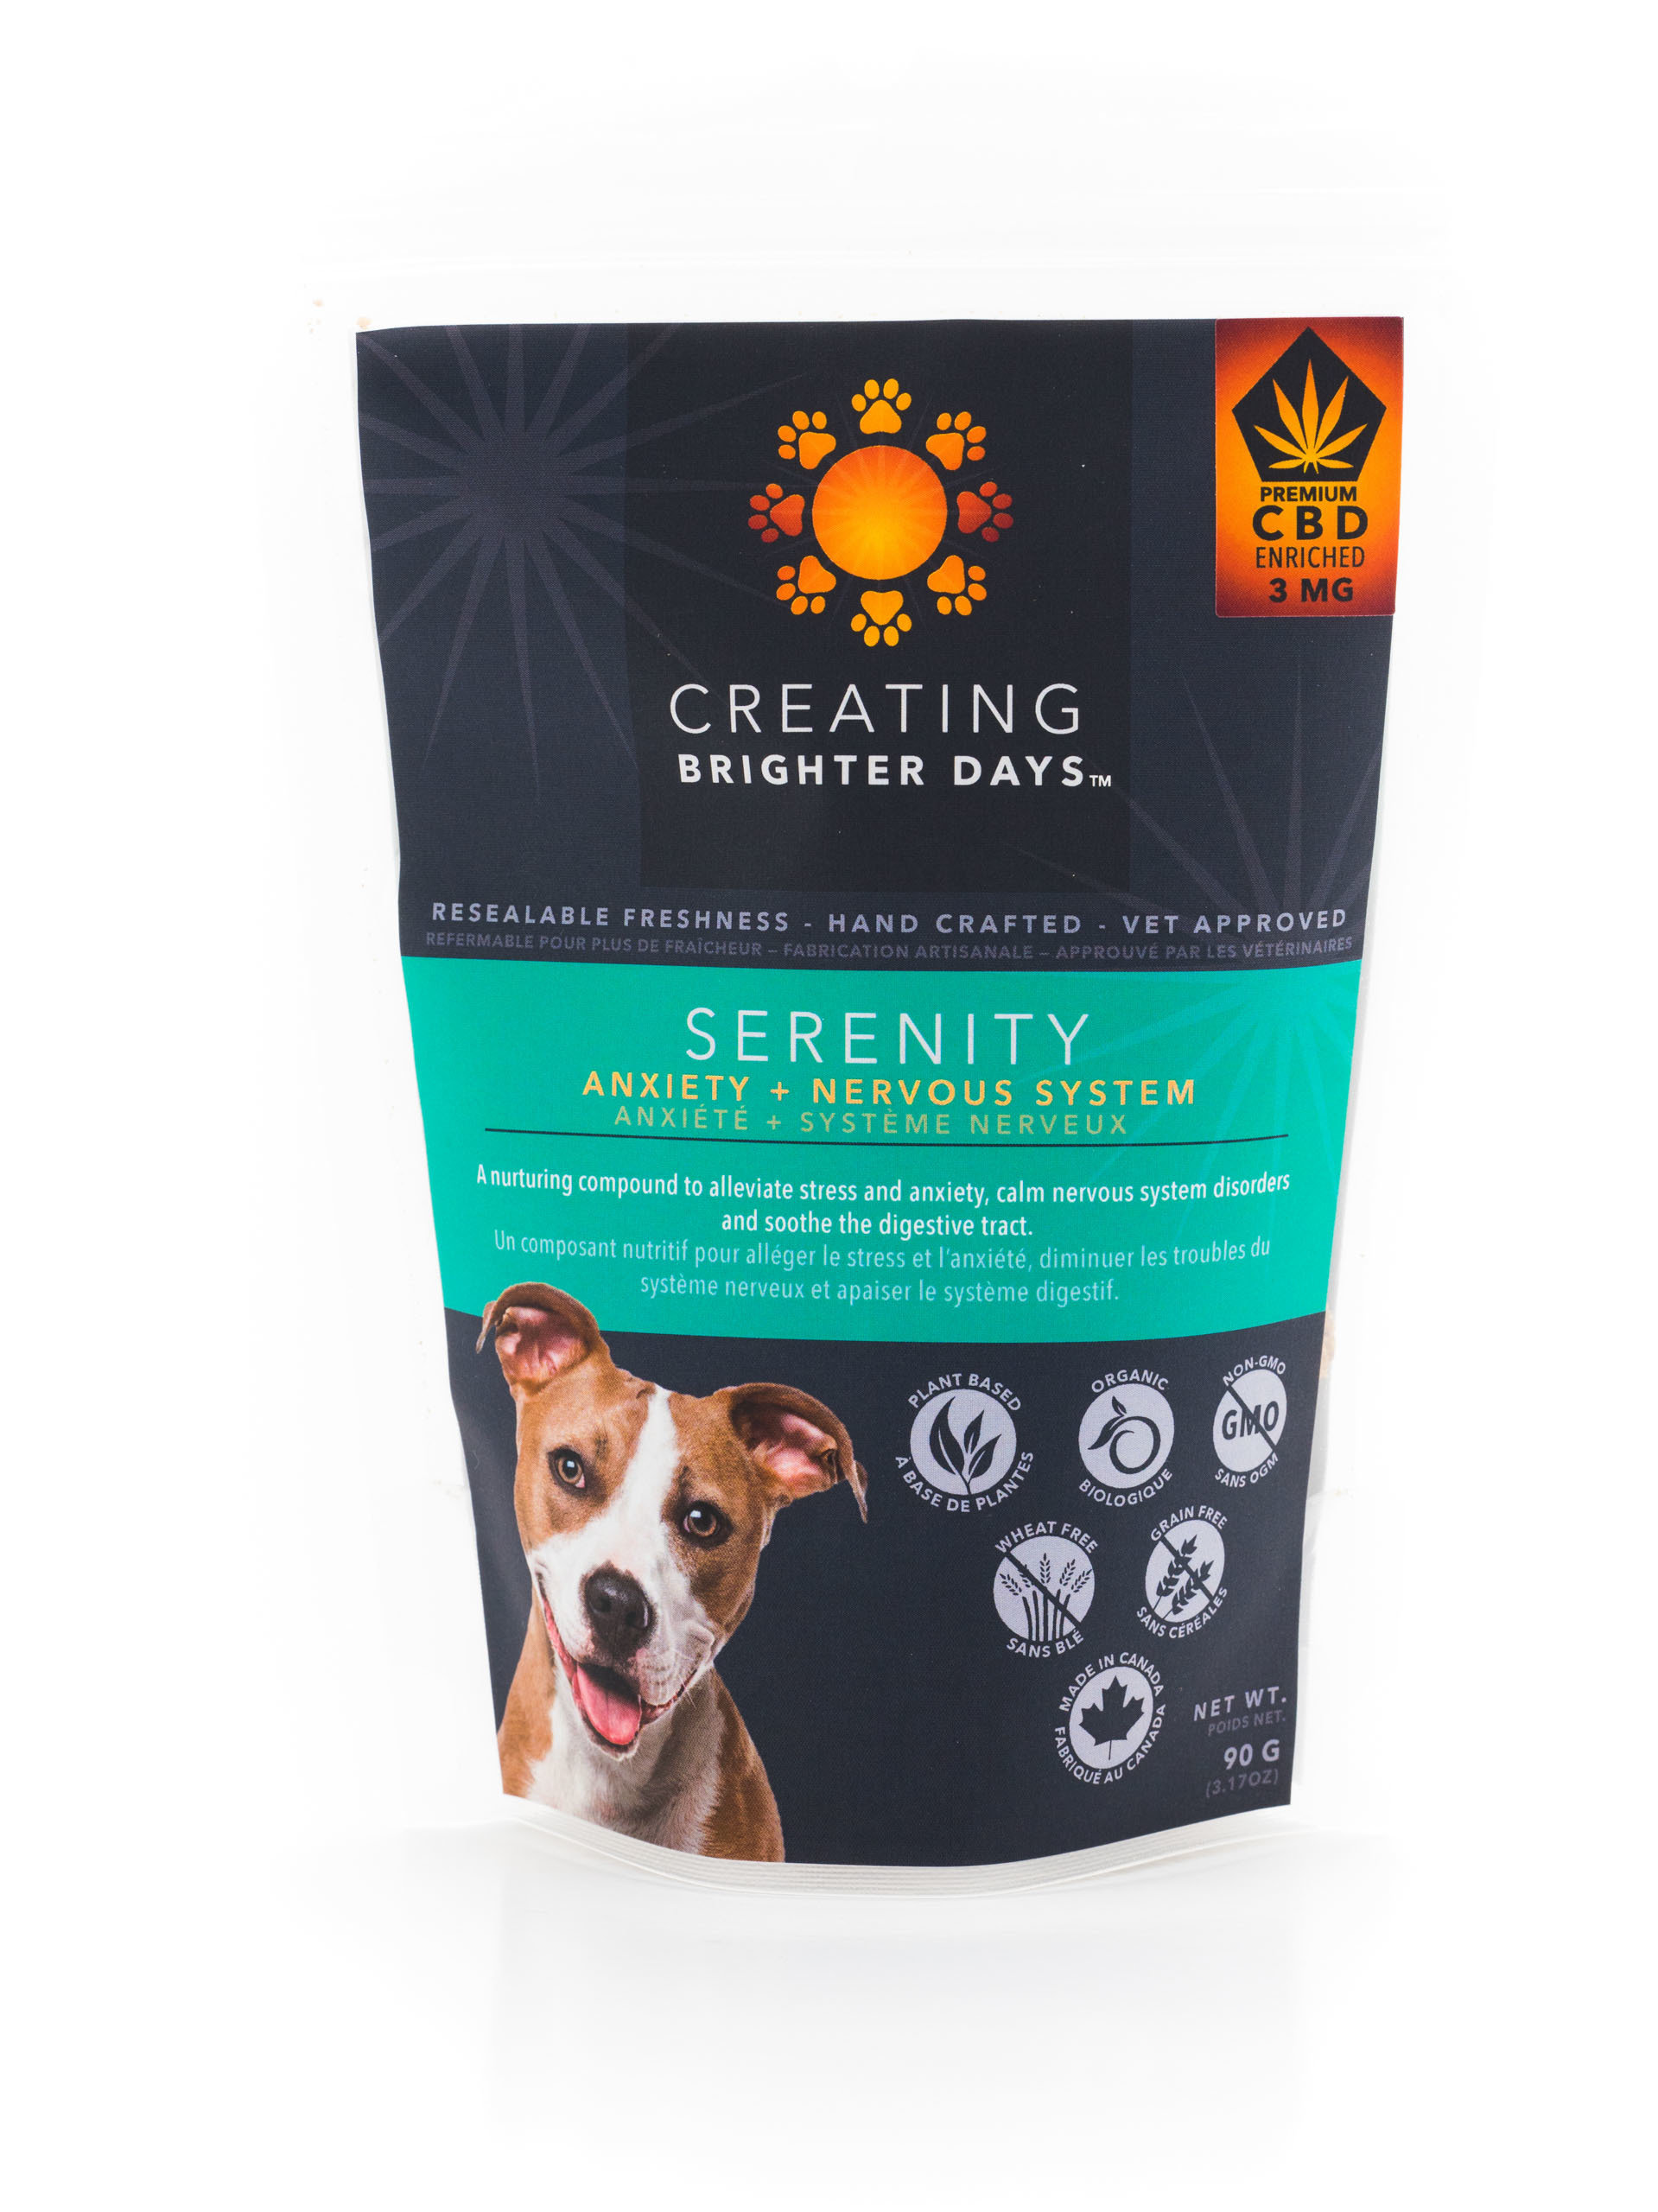 Serenity Enriched Treats (3mg CBD) by Creating Brighter Days 00093